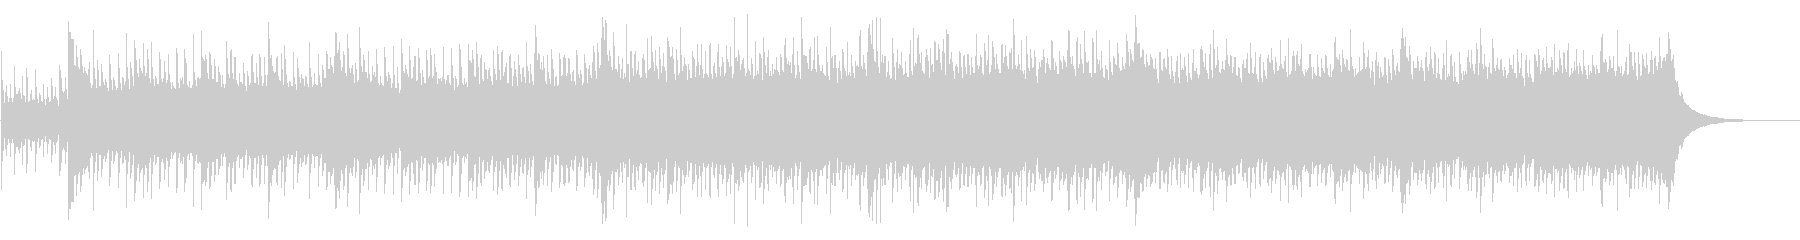 Refreshing and fashionable company VP company introduction 1 and a half minutes's unreproduced waveform